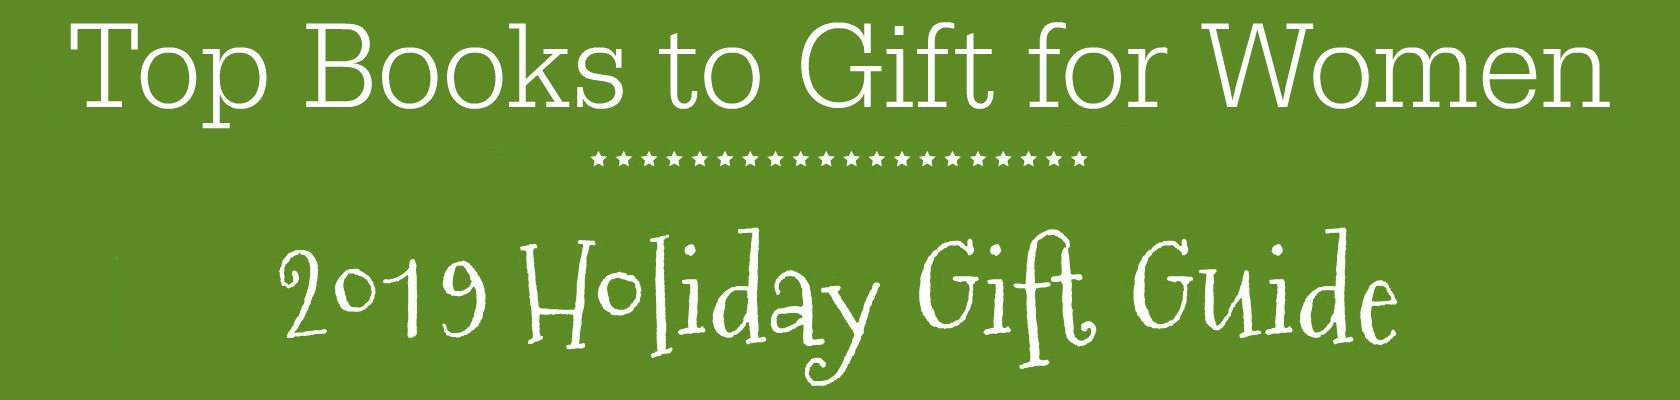 Books for Women Holiday Gift Guide